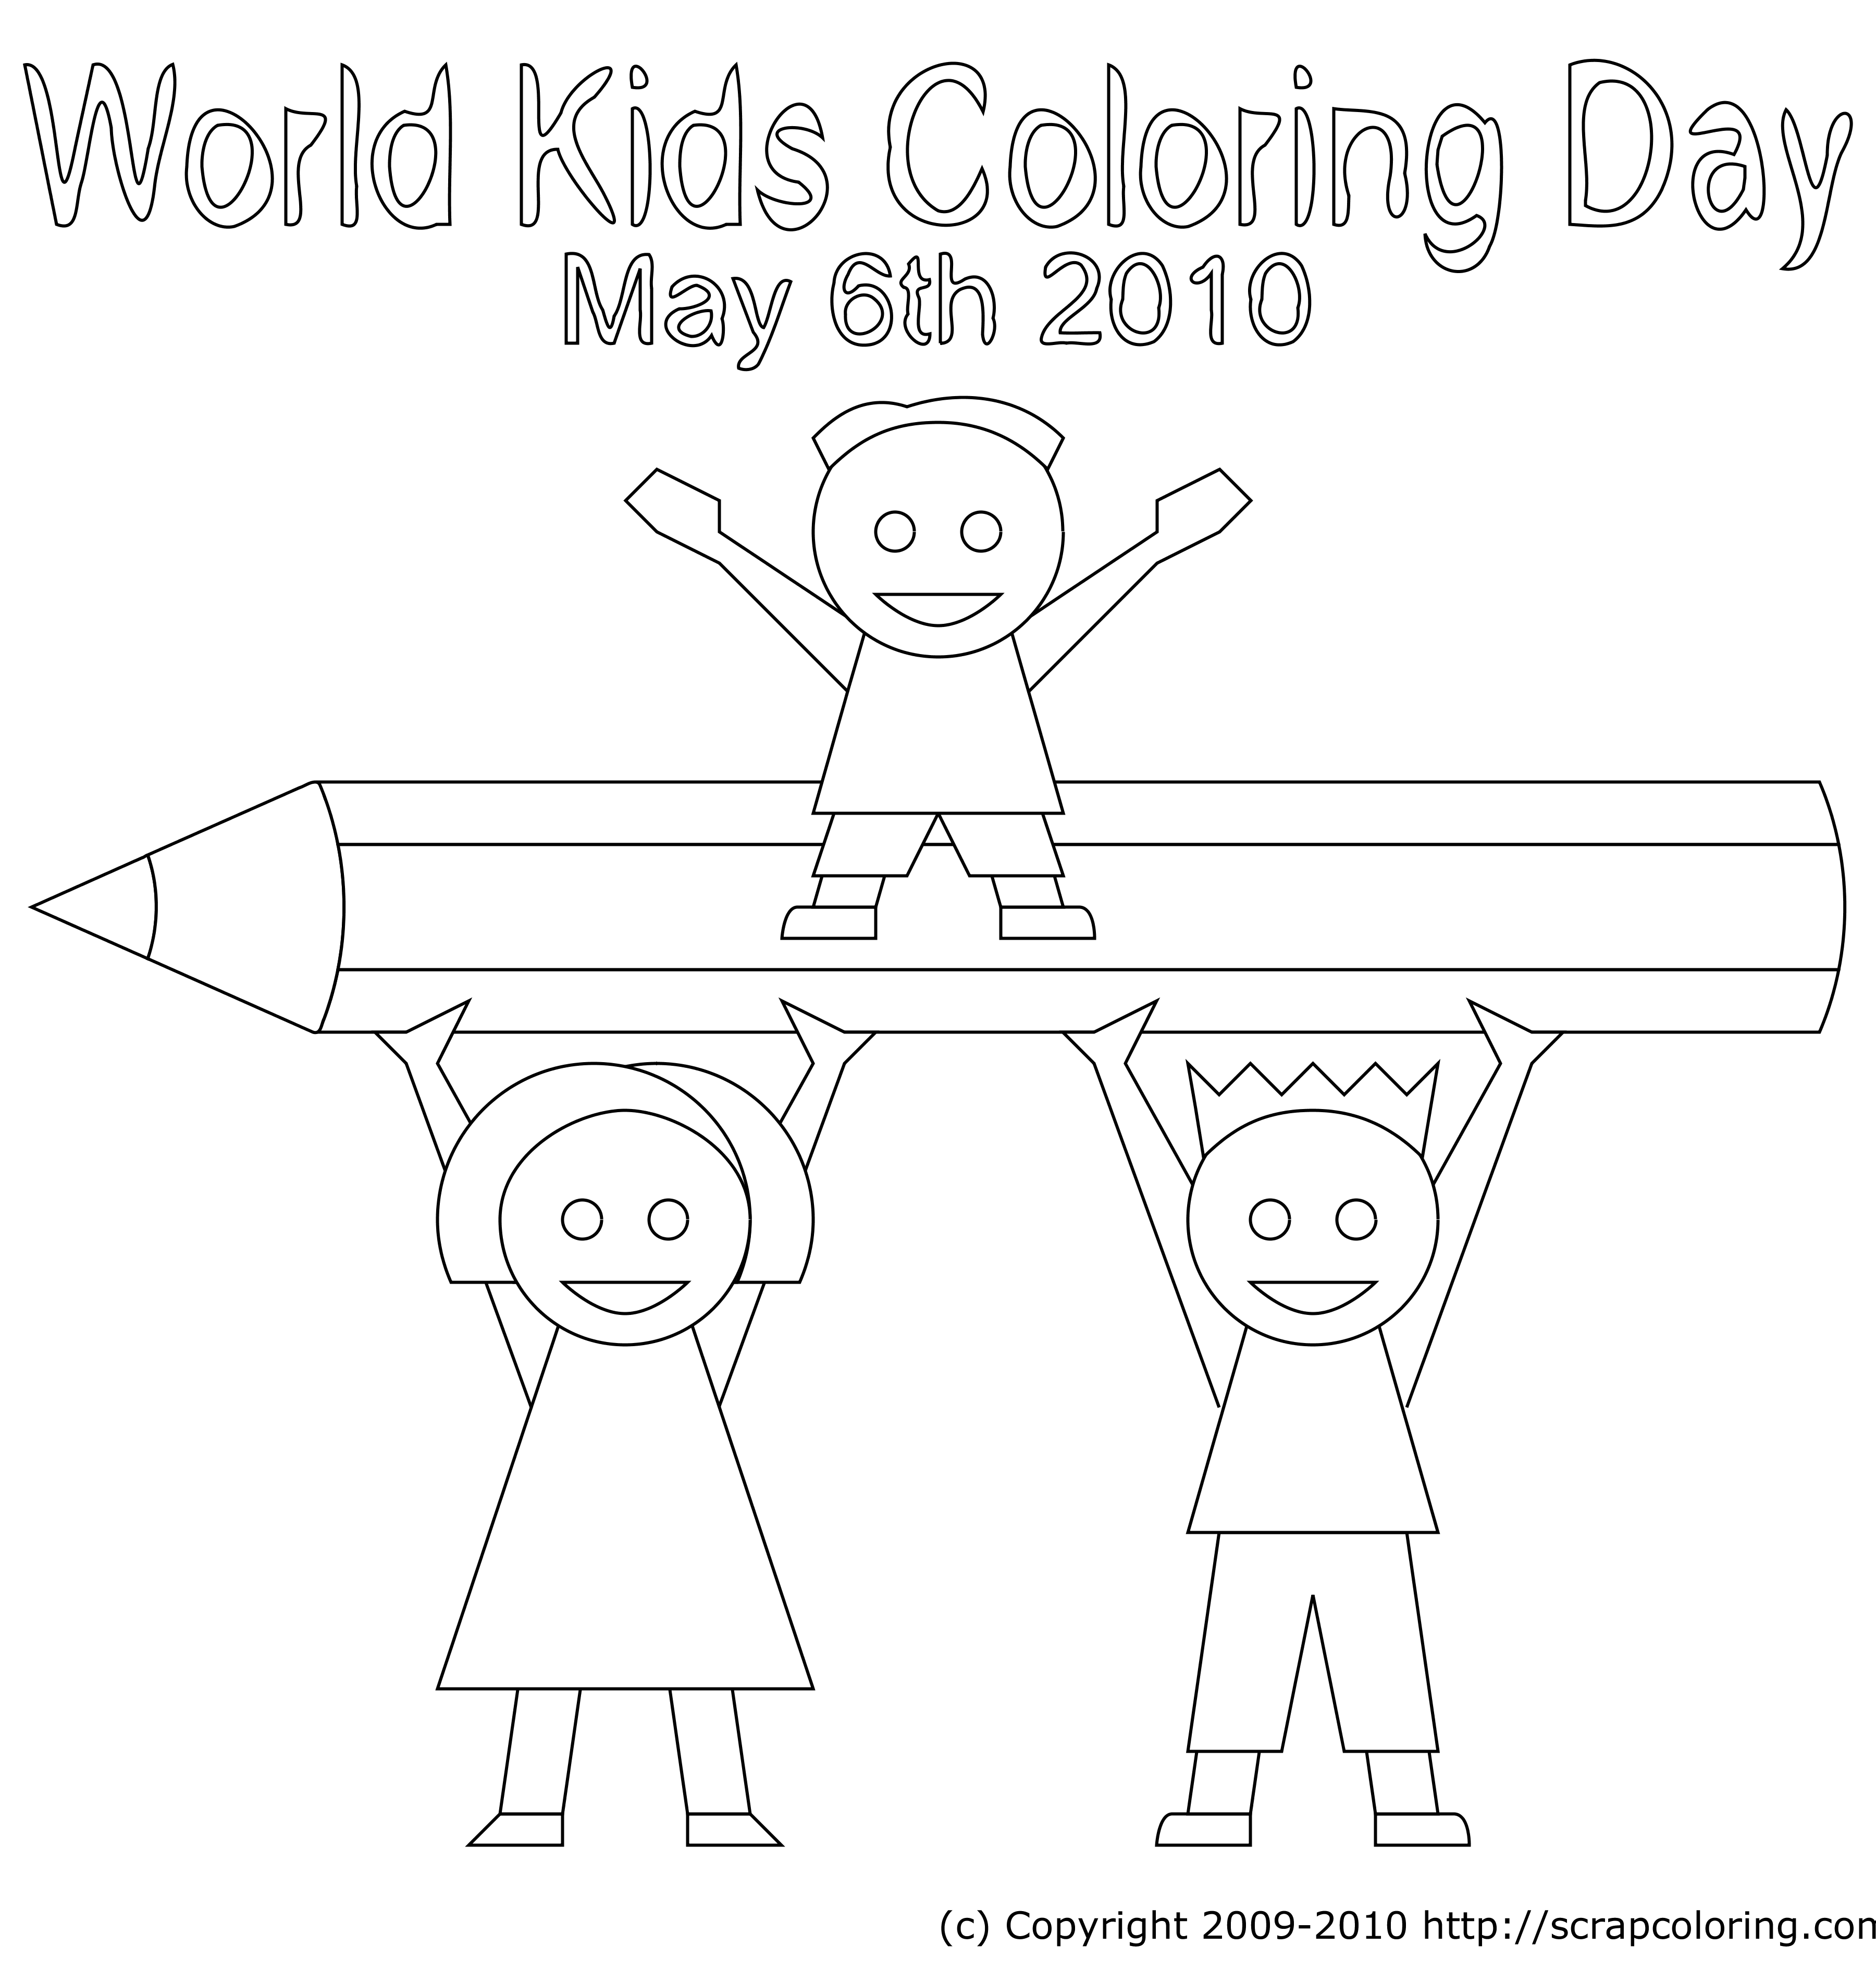 world kids coloring day 2010 coloring page